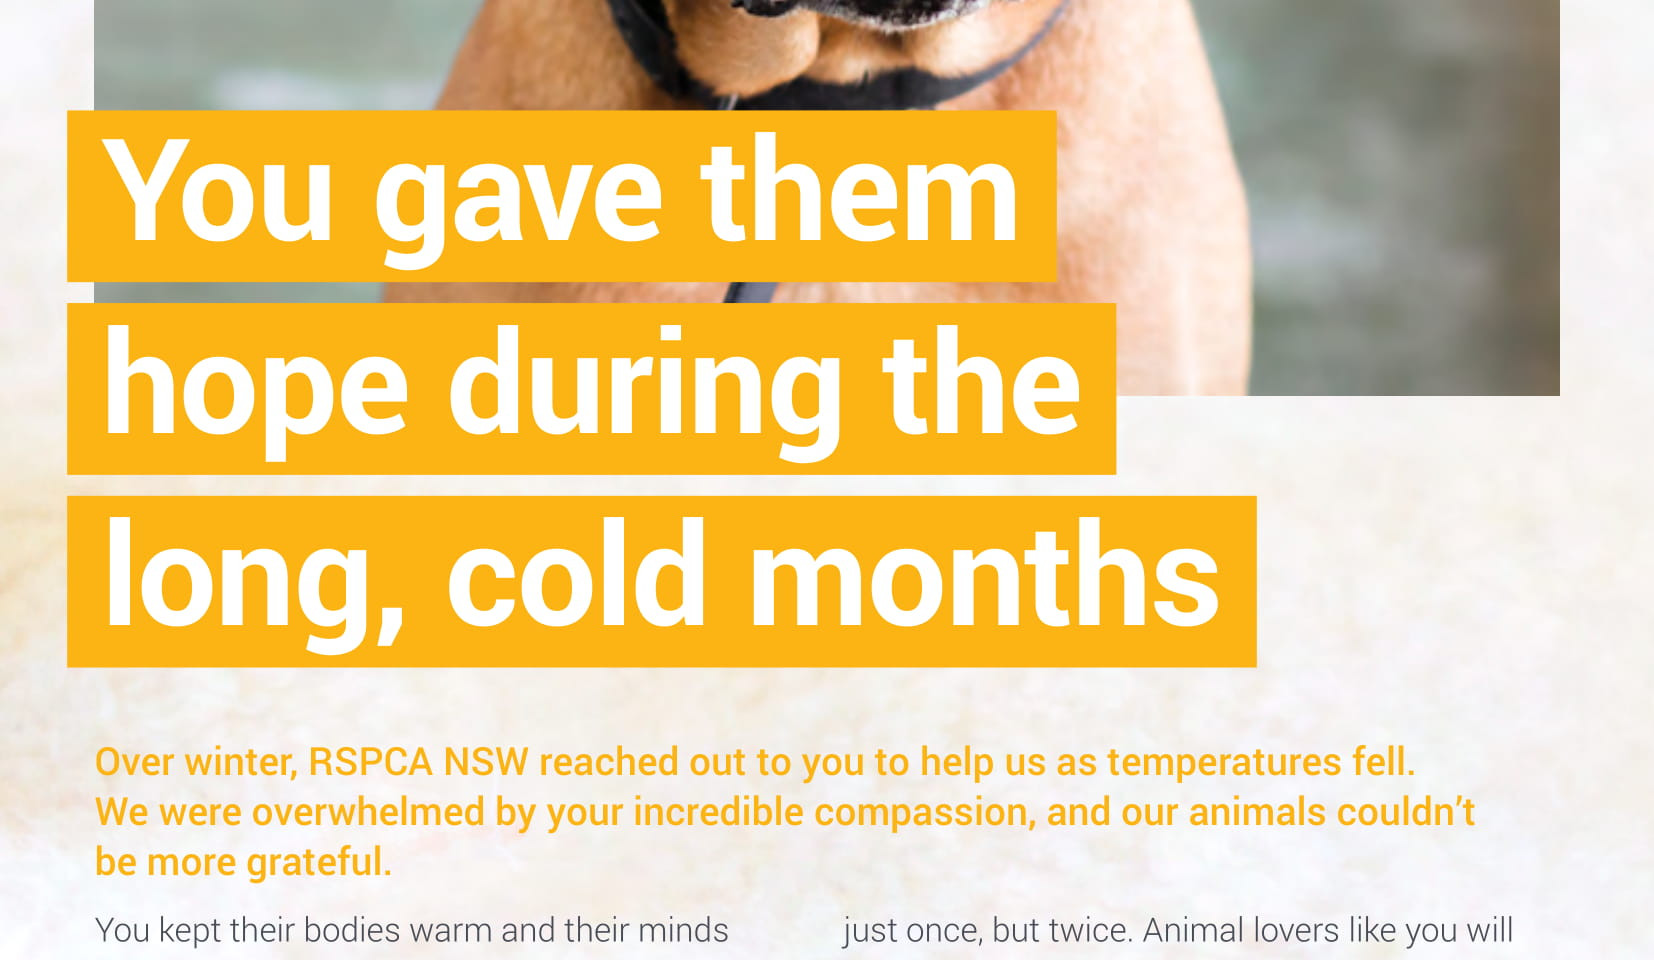 RSPCA NSW / Animal Action Report September